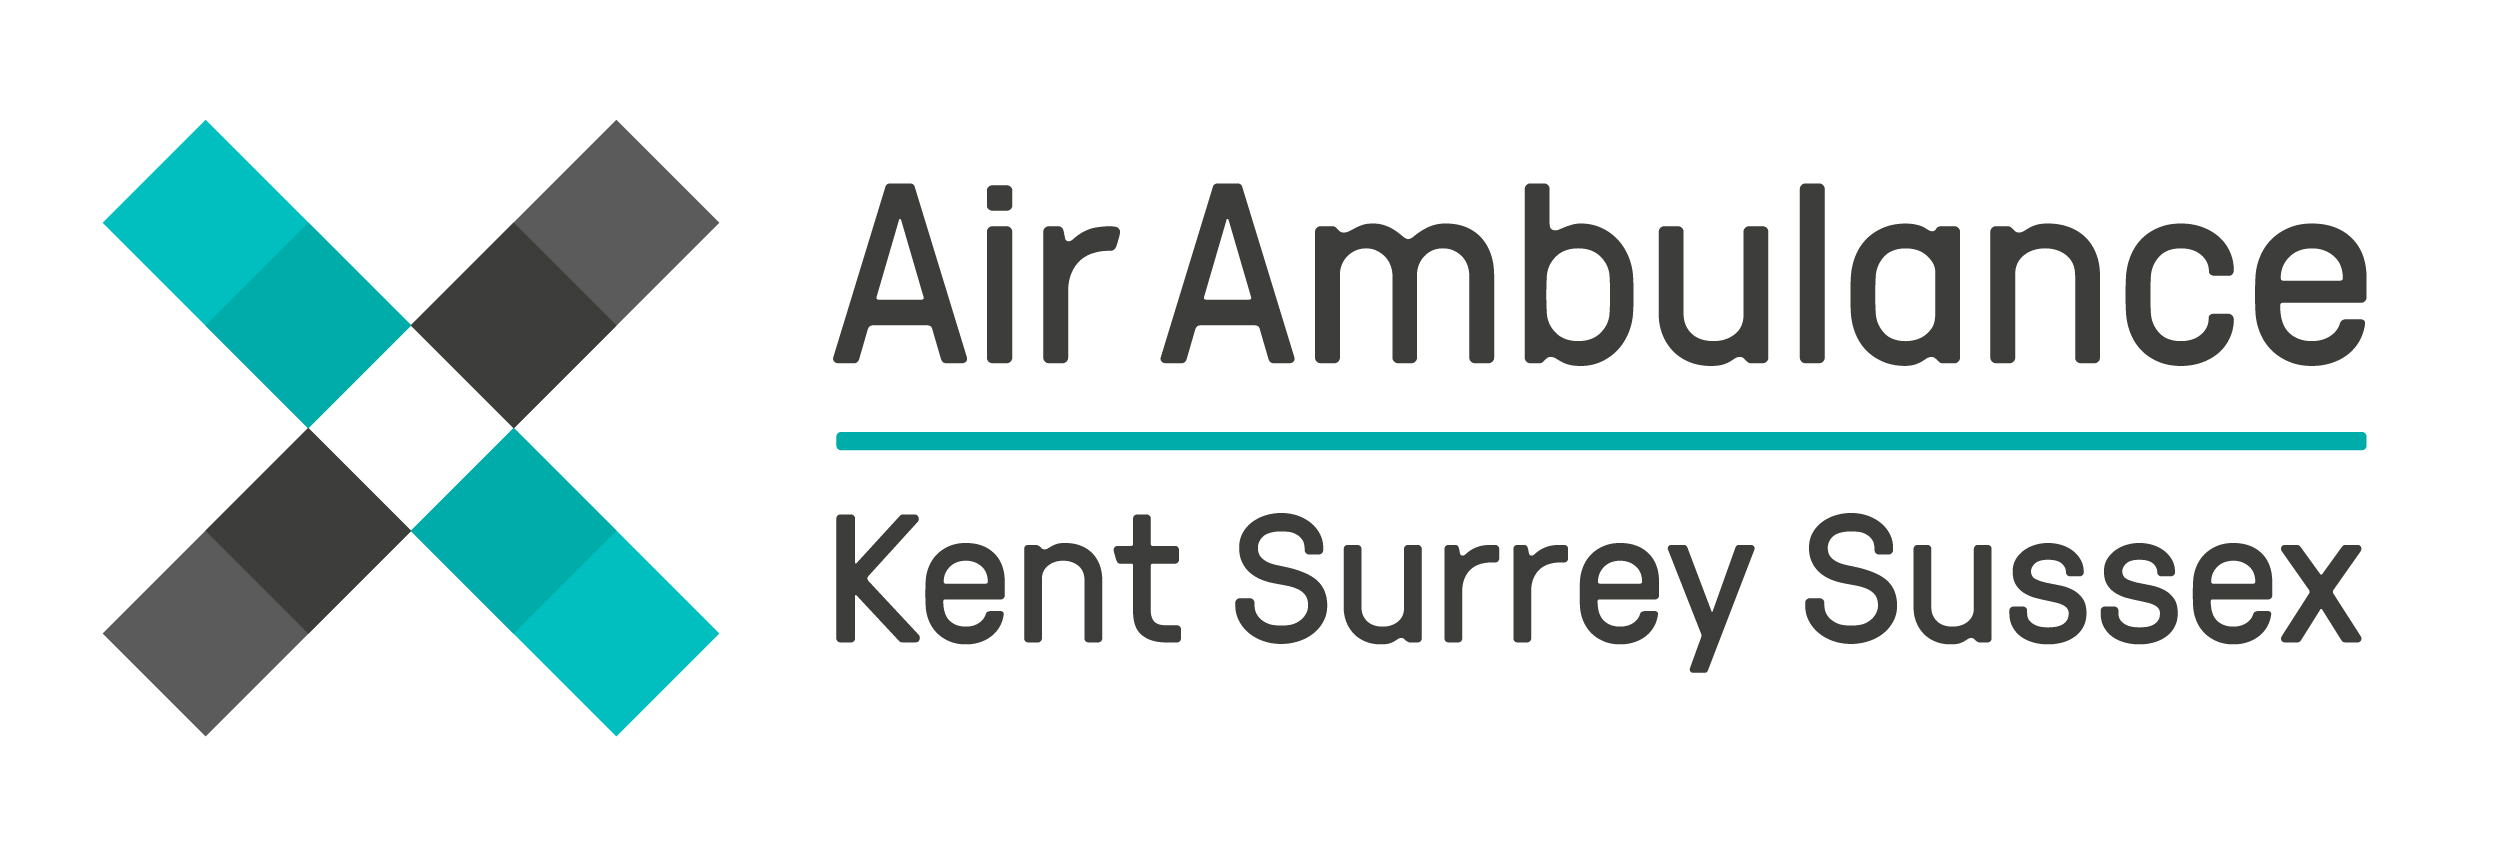 Kent, Surrey, Sussex Air Ambulance Logo